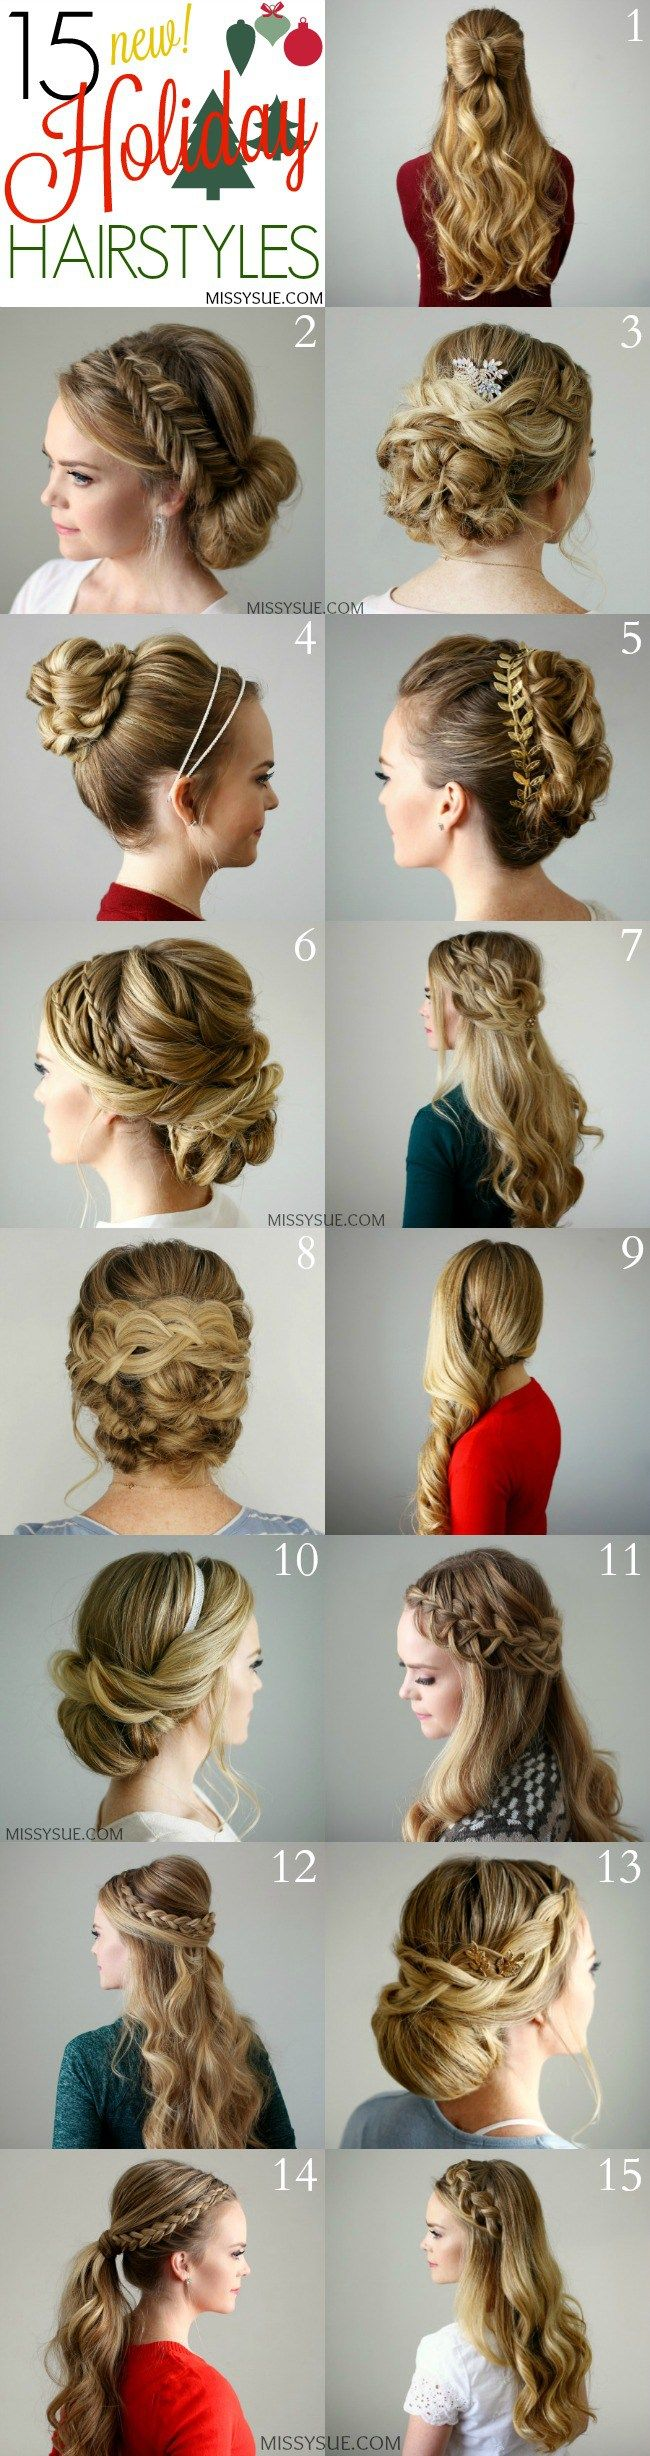 holiday hairstyles missysue beauty pinterest holiday